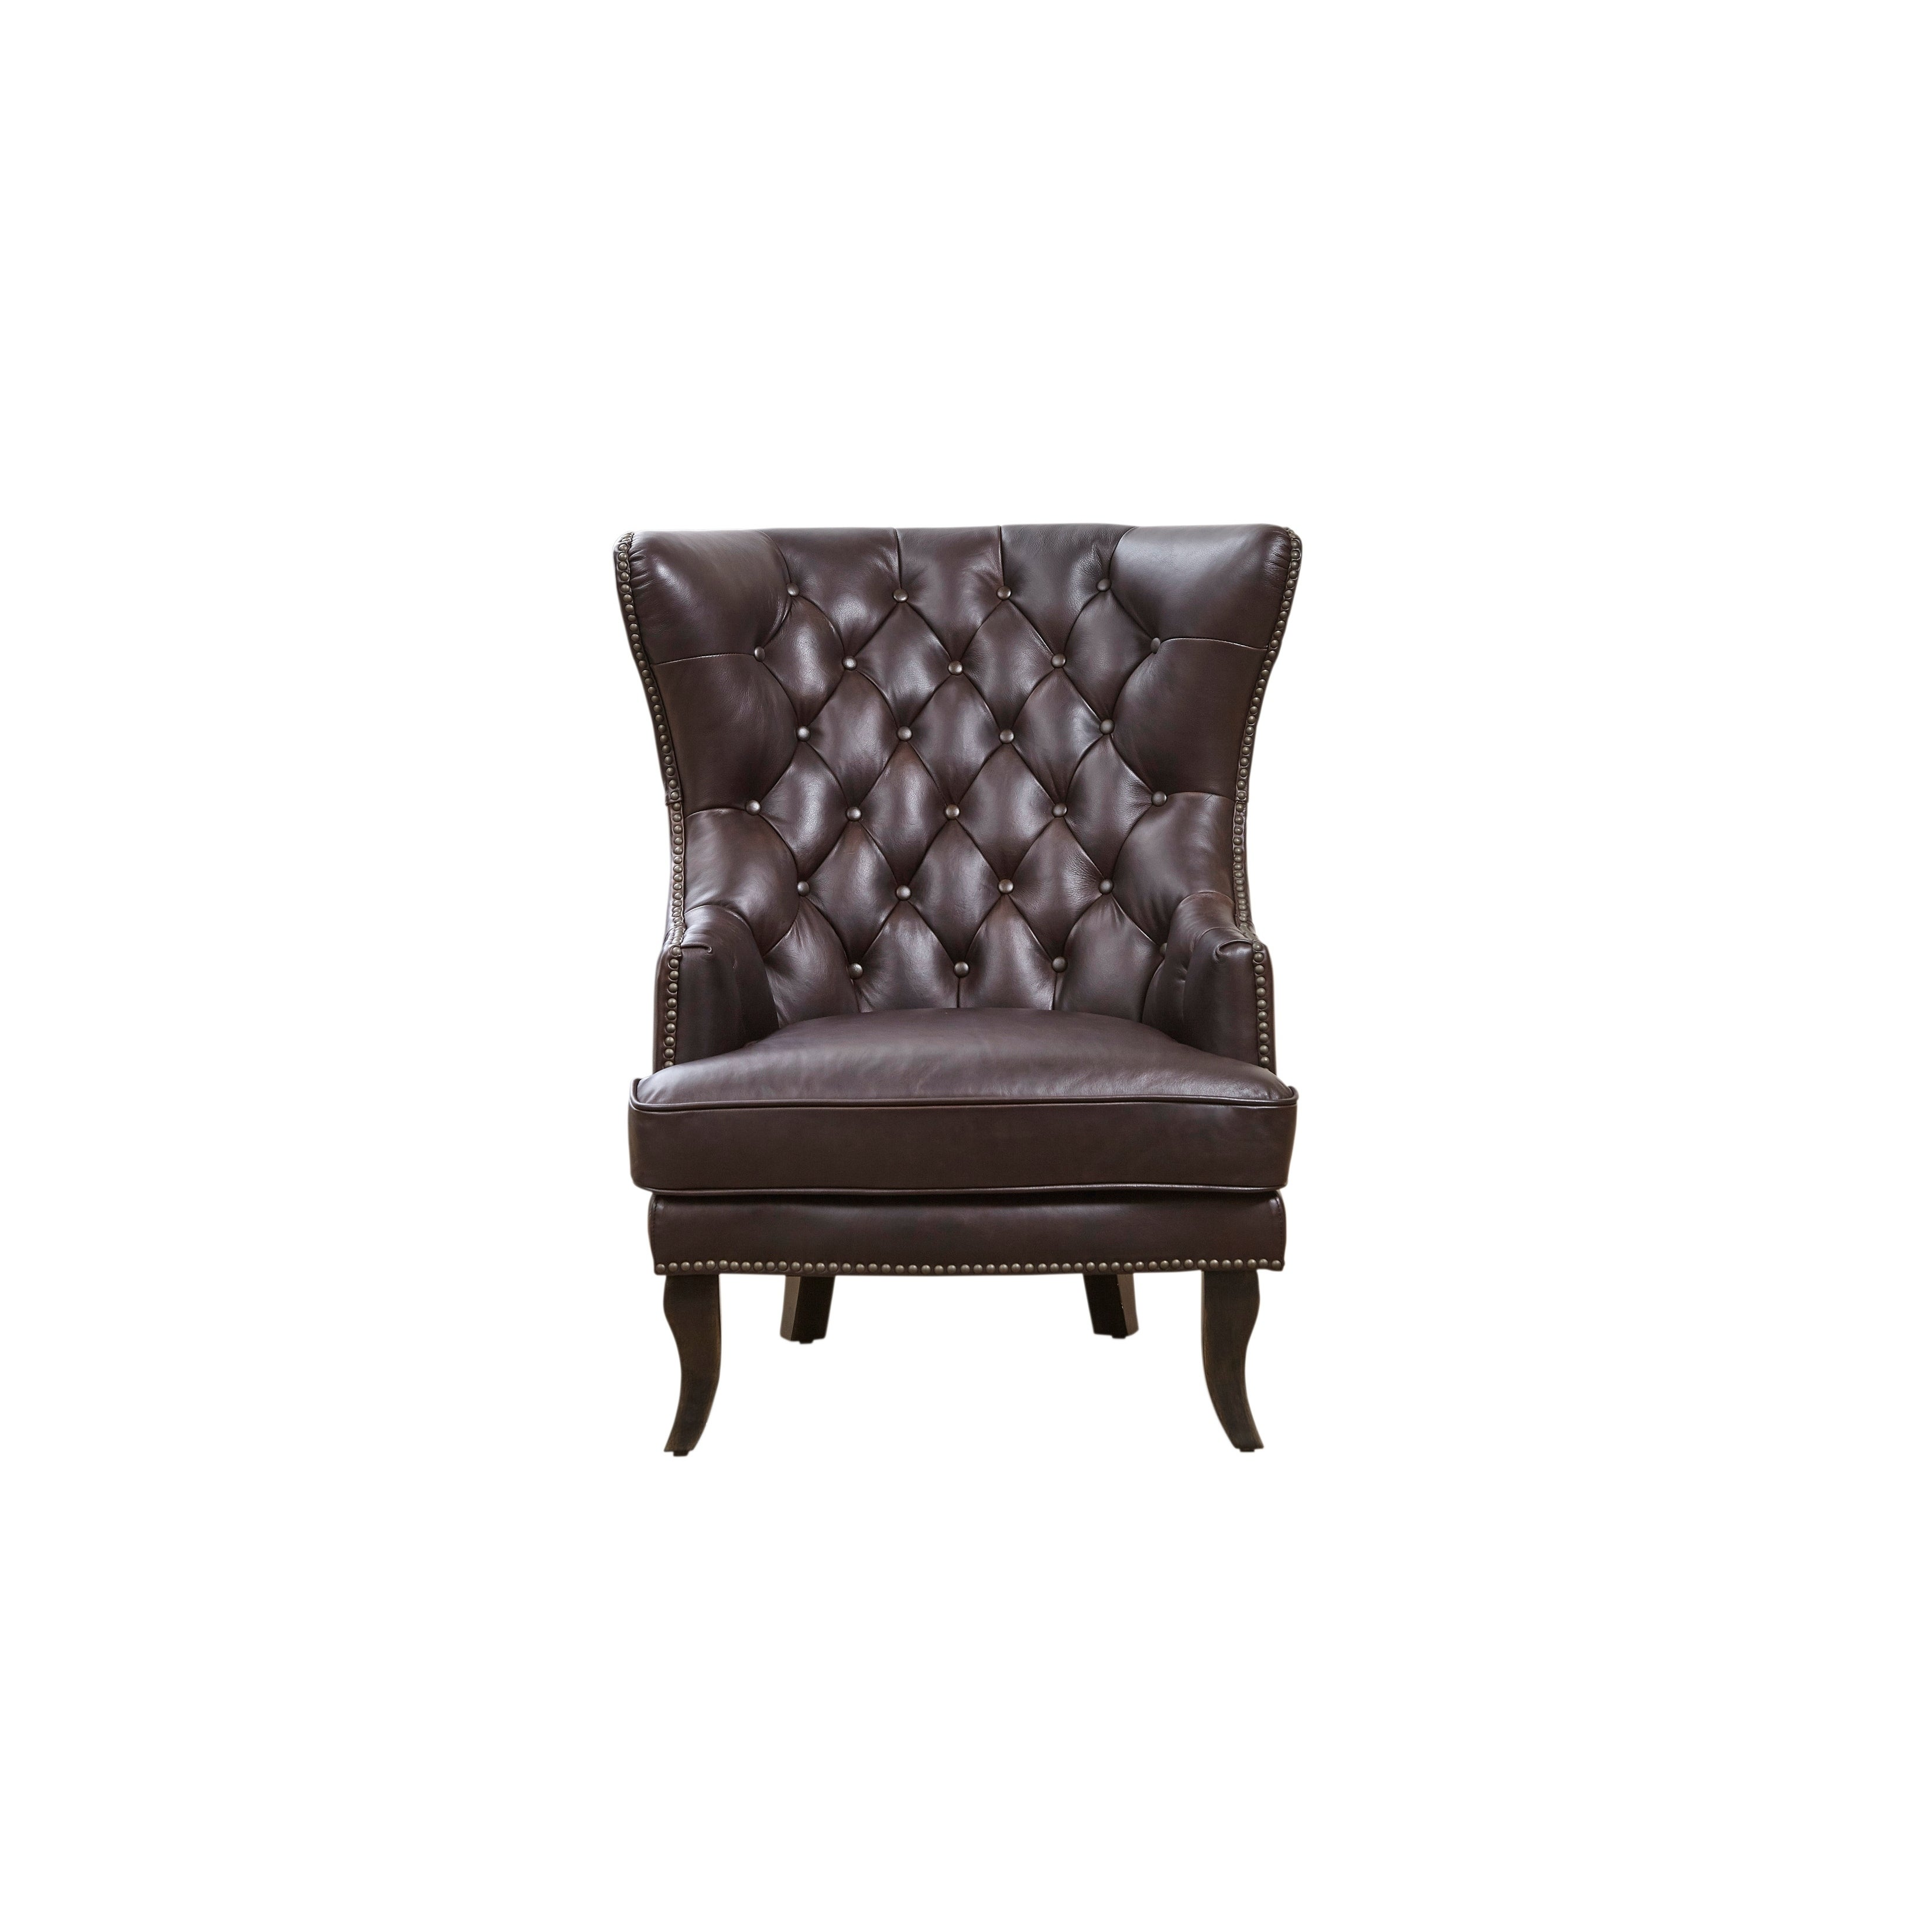 Shop Lazzaro Leather Linville Brompton Chocolate Wing Back Chair - Free Shipping Today - Overstock - 21384758  sc 1 st  Overstock.com & Shop Lazzaro Leather Linville Brompton Chocolate Wing Back Chair ...